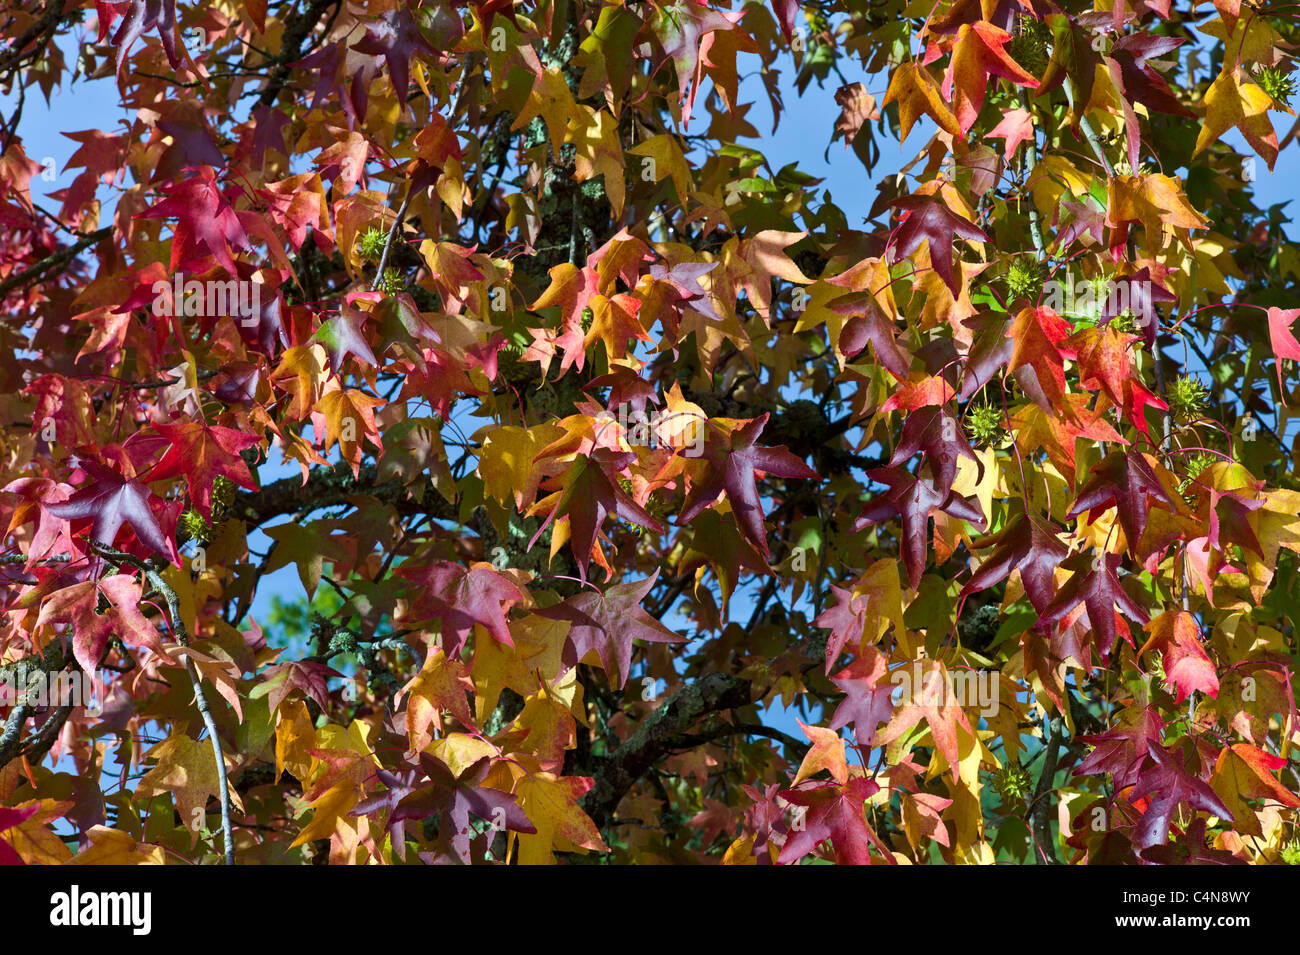 Autumn color leaves on maple tree in Bordeaux, France - Stock Image